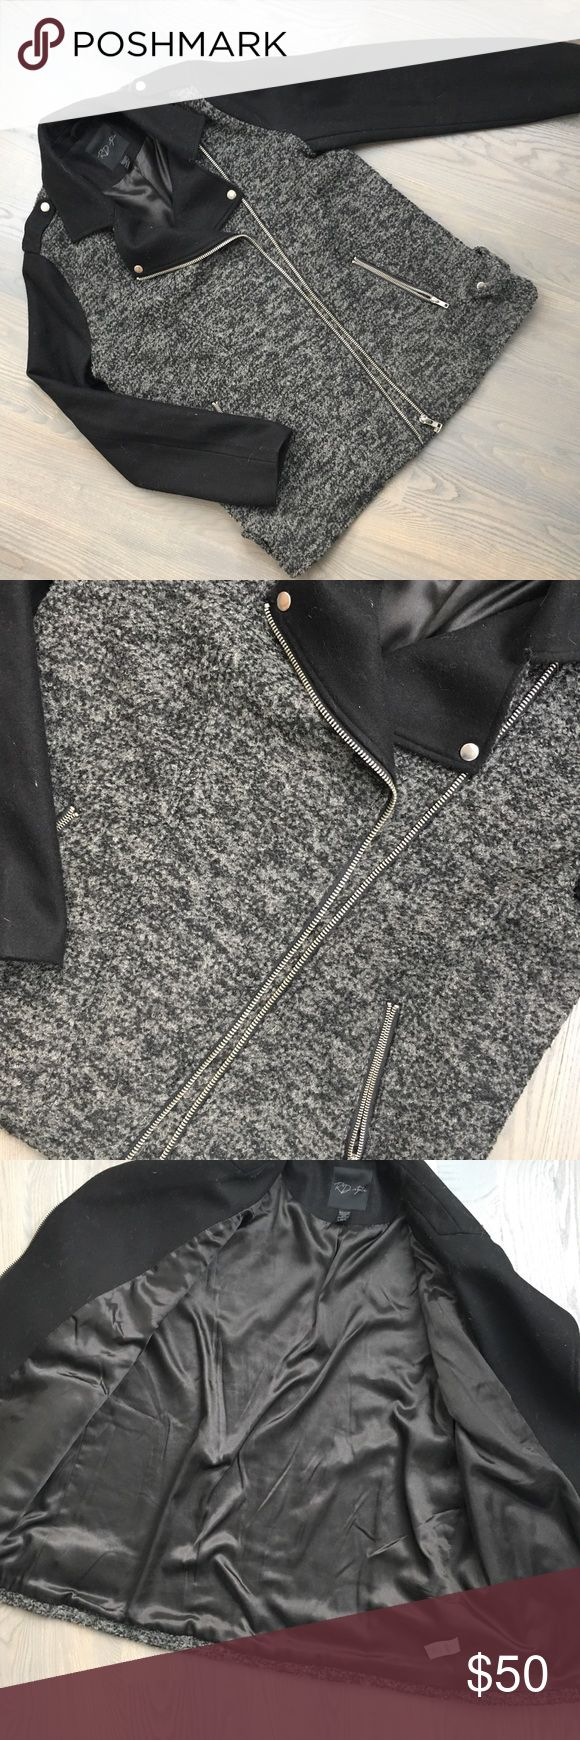 Sale!! 🛍 Stitchfix Moto Cocoon Coat Worn twice; like new! Wool blend Moto style cocoon coat from Stitch Fix.  Warm and cozy! Slight cocoon shape, so fit is generous in body. Stitch Fix Jackets & Coats